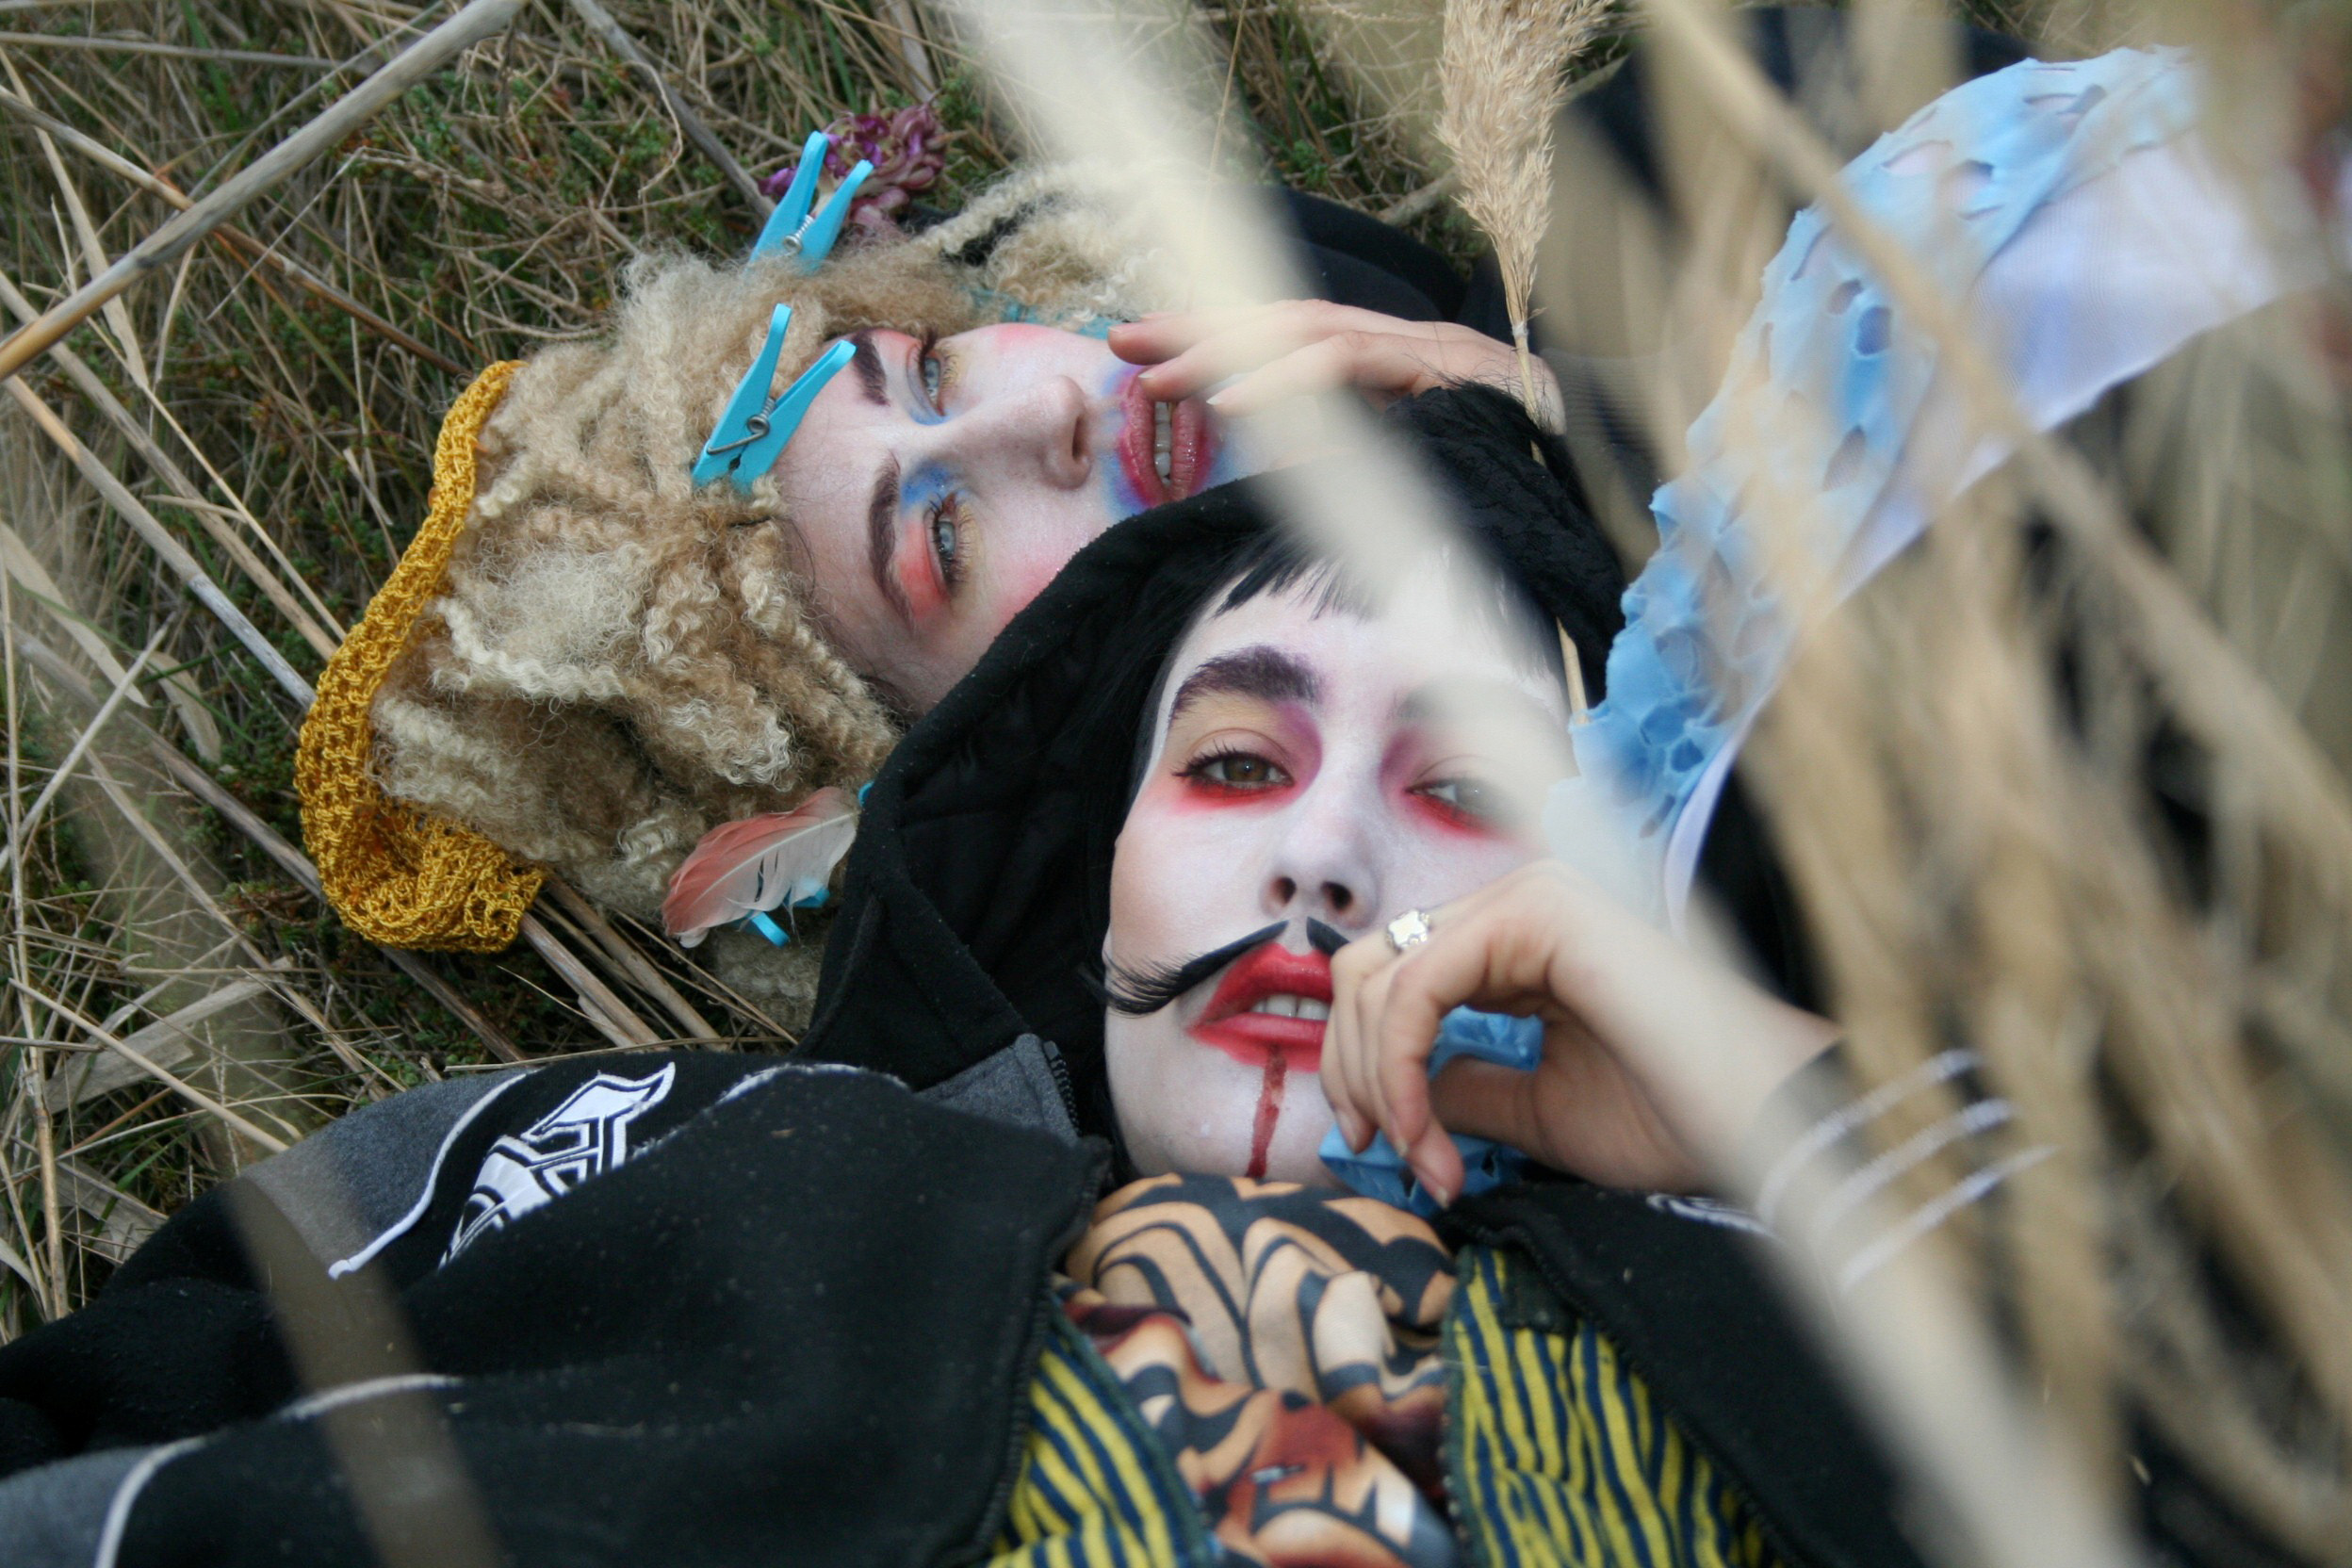 Photo Courtesy Of: CocoRosie